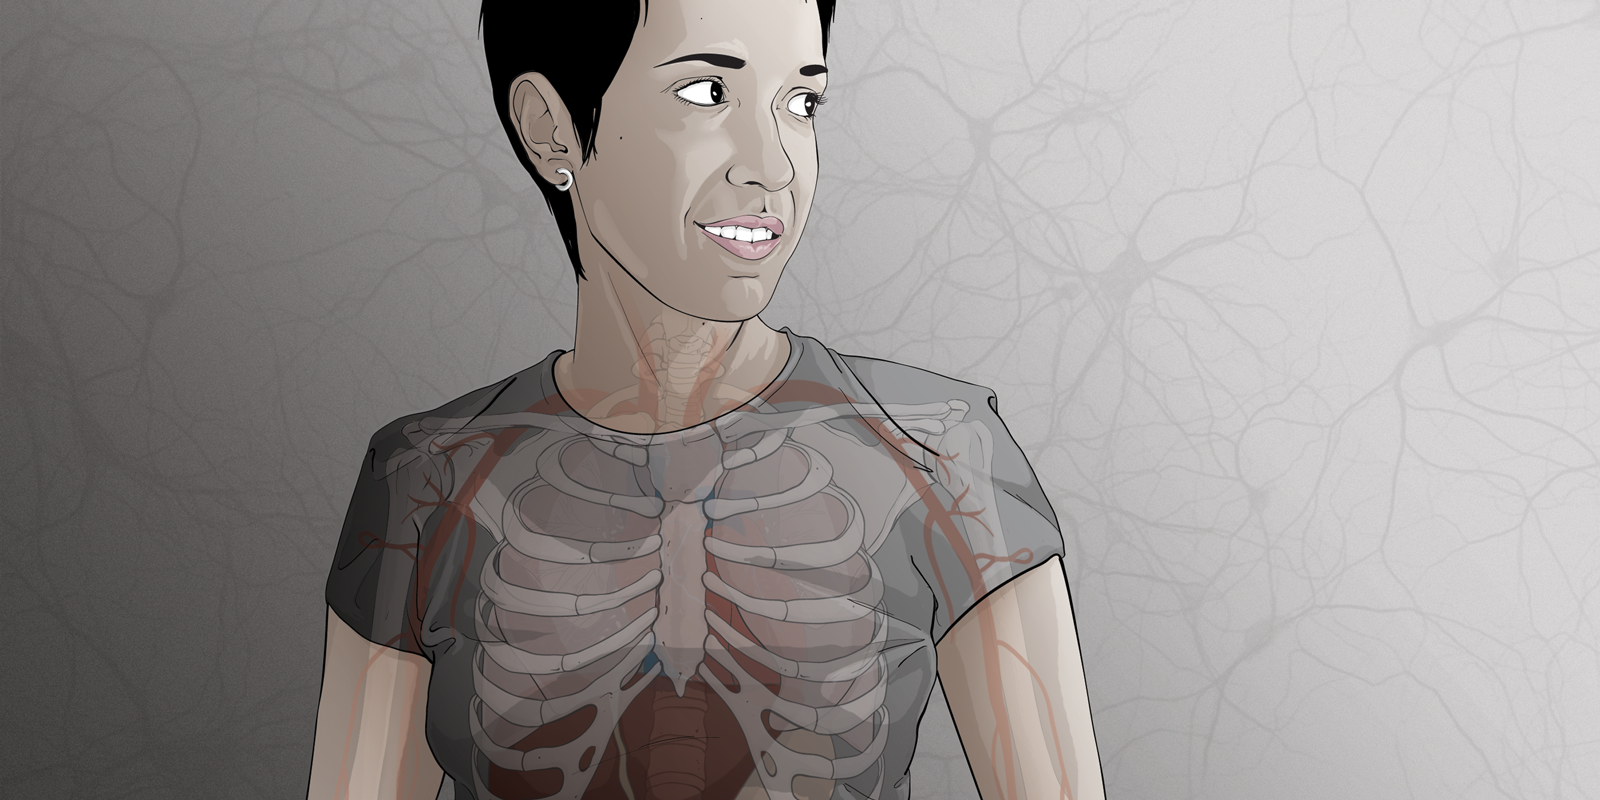 Medical illustration/self-portrait of USD alumna Vanessa Ruiz